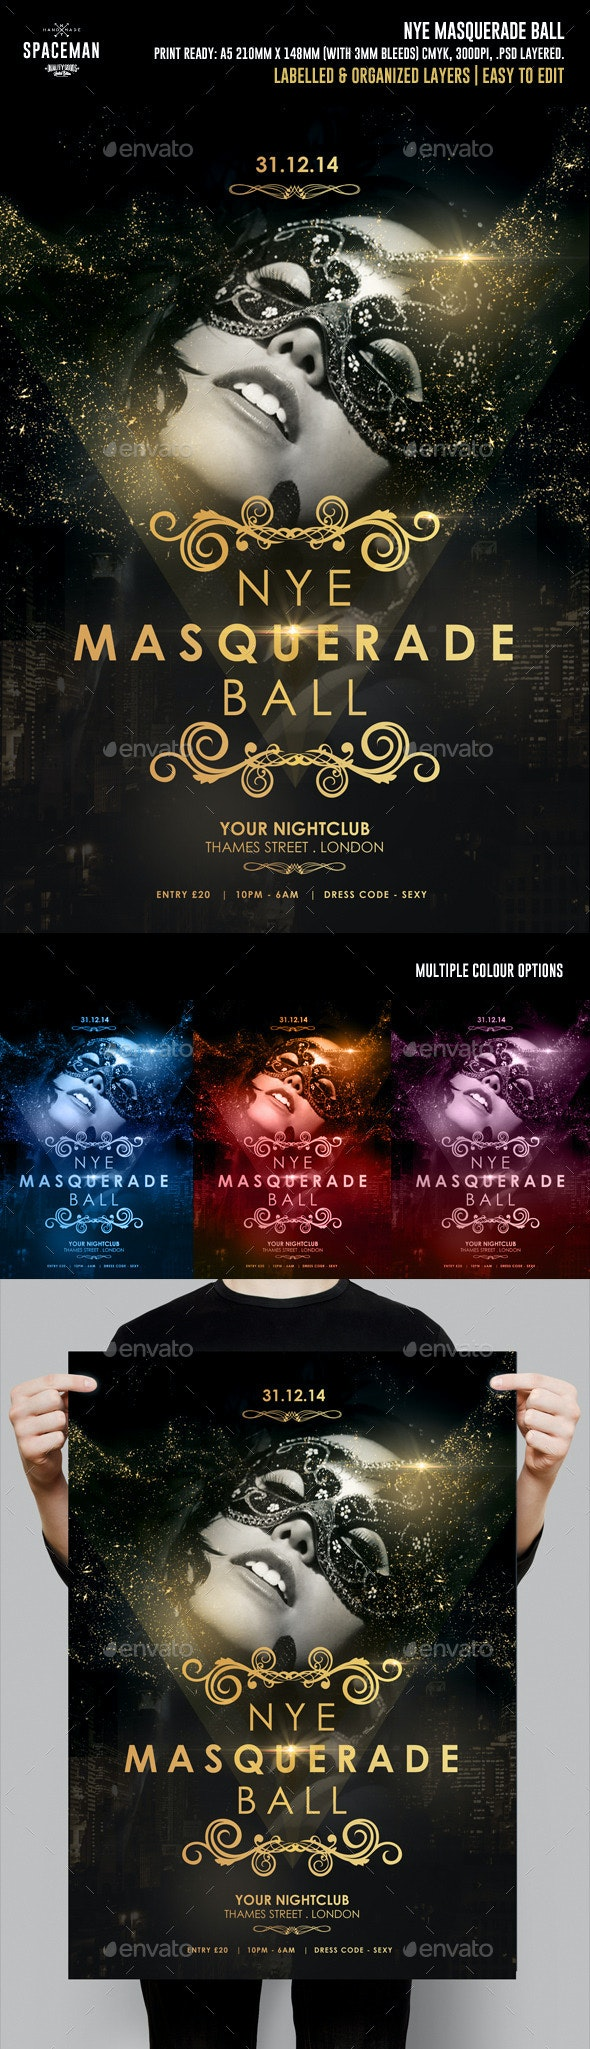 NYE Masquerade Ball Flyer - Clubs & Parties Events